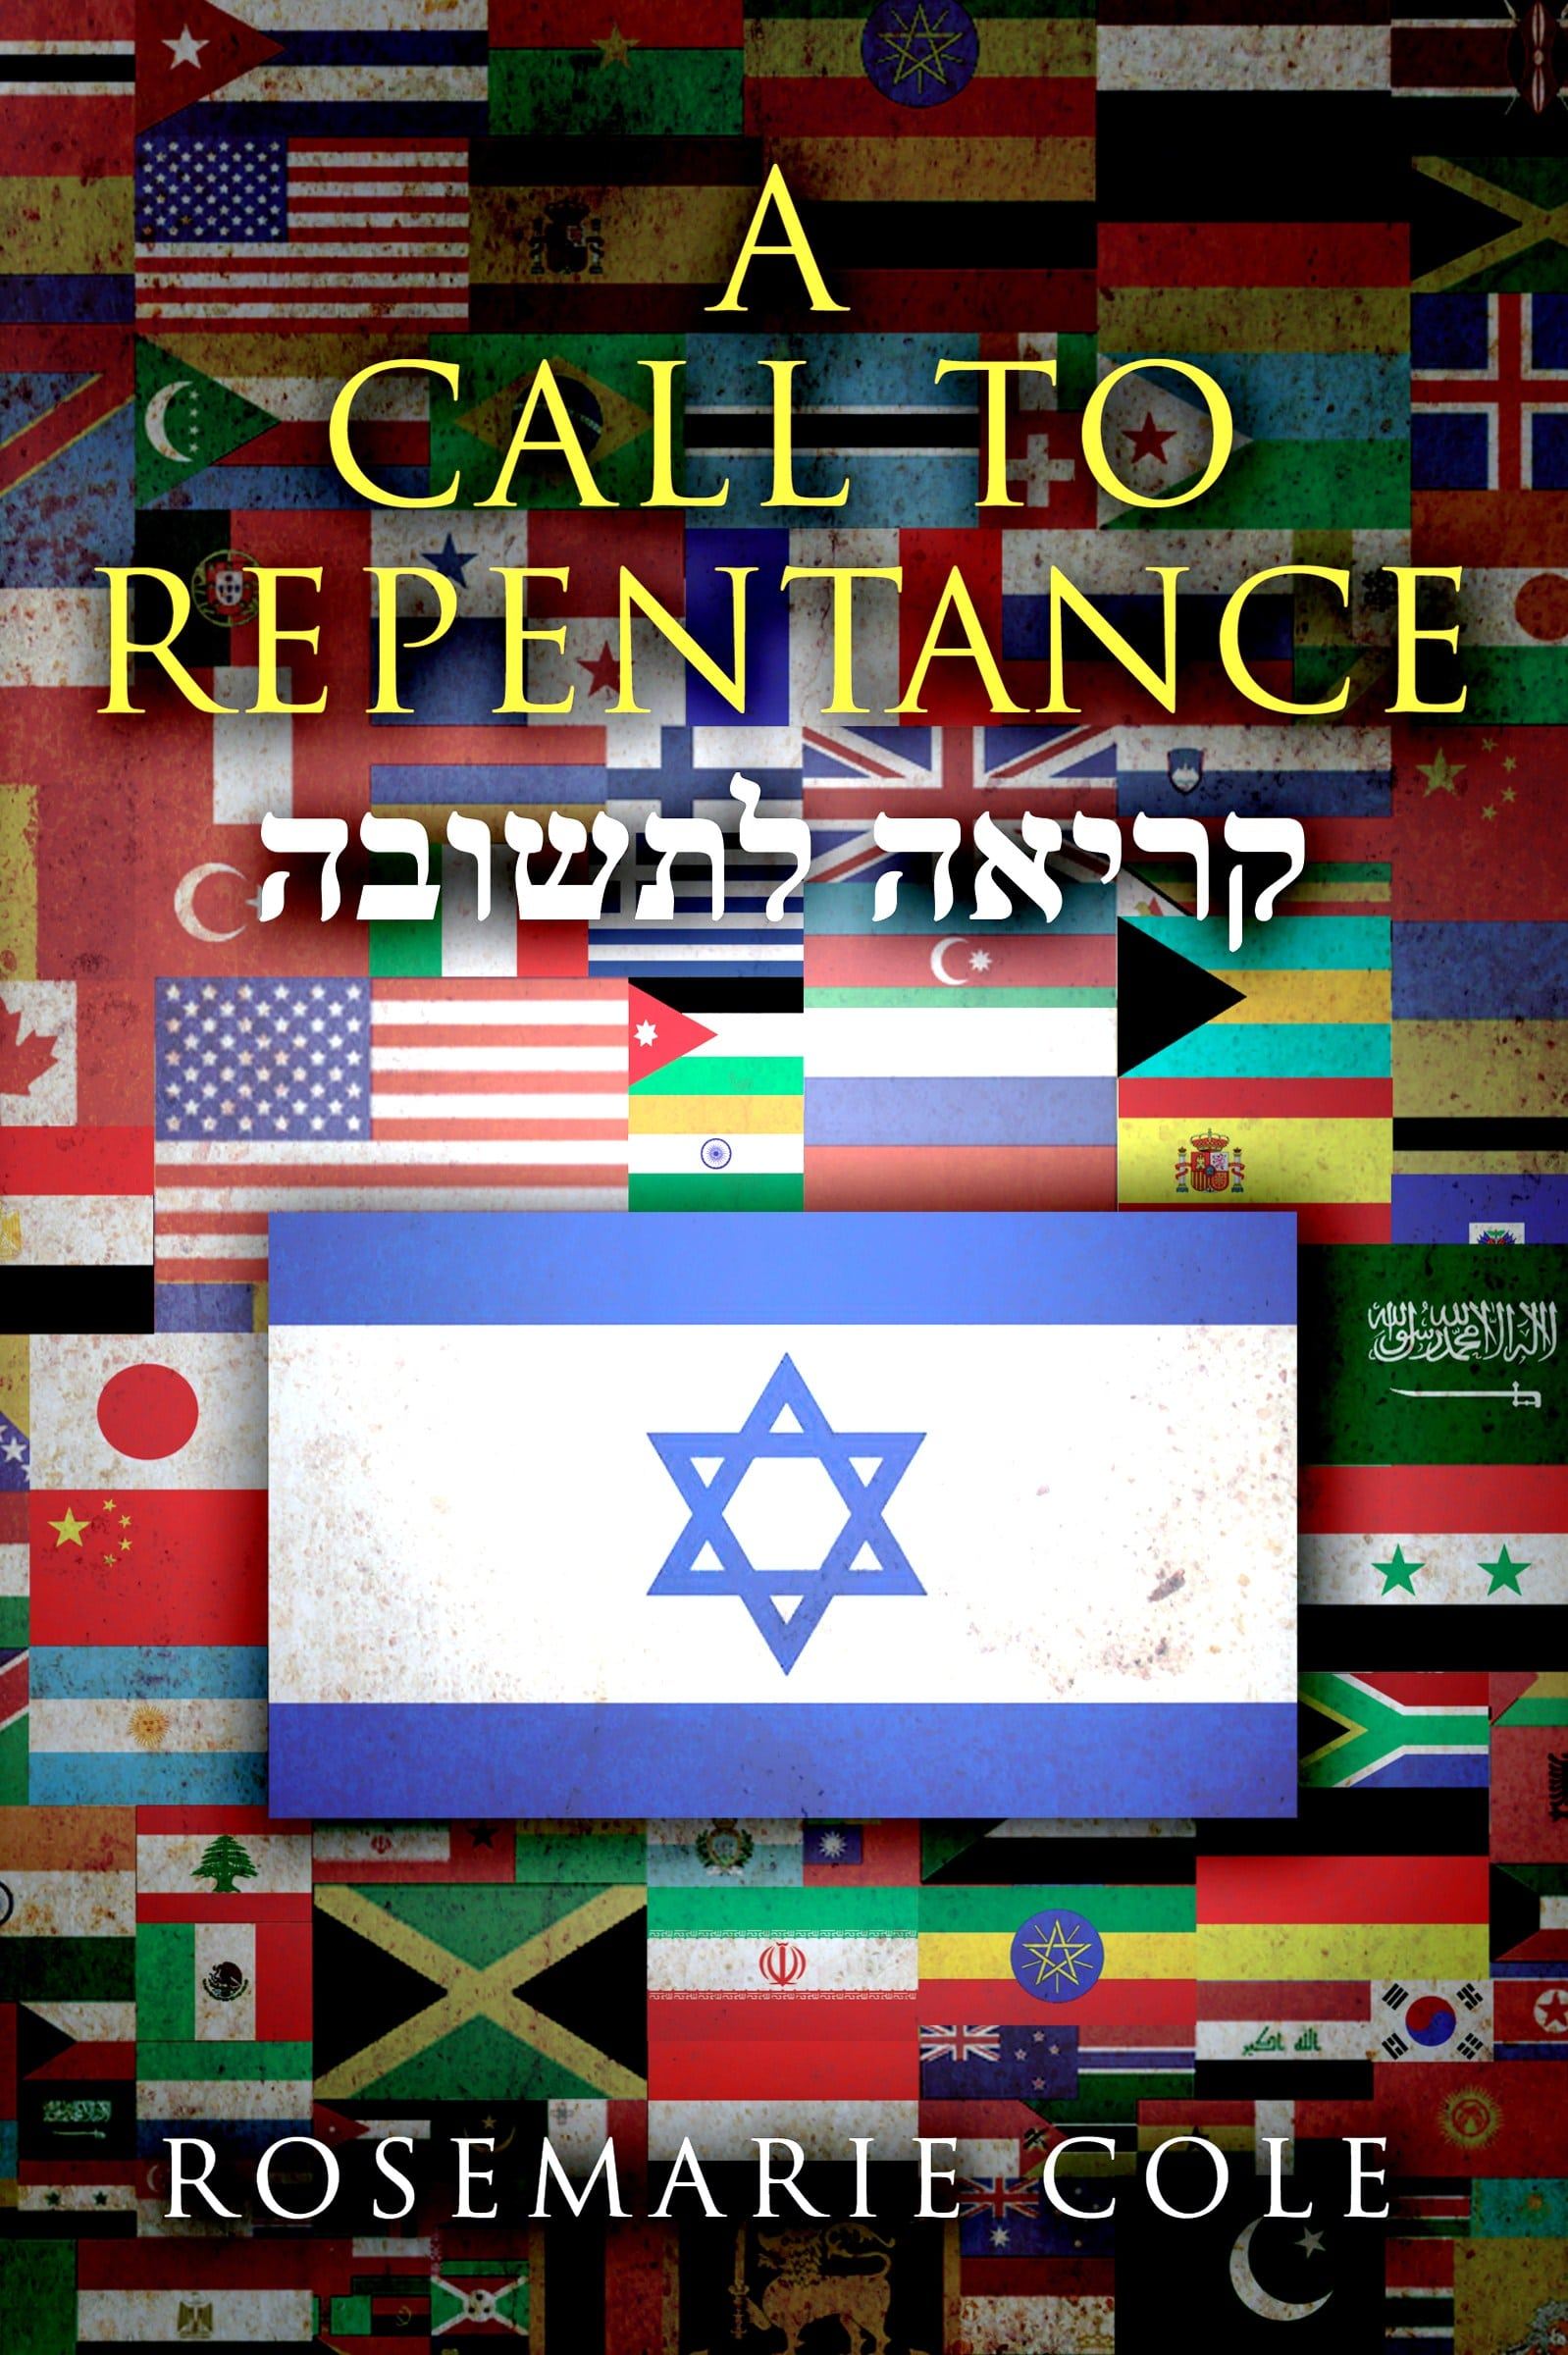 A CALL TO REPENTANCE - Rosemarie Cole